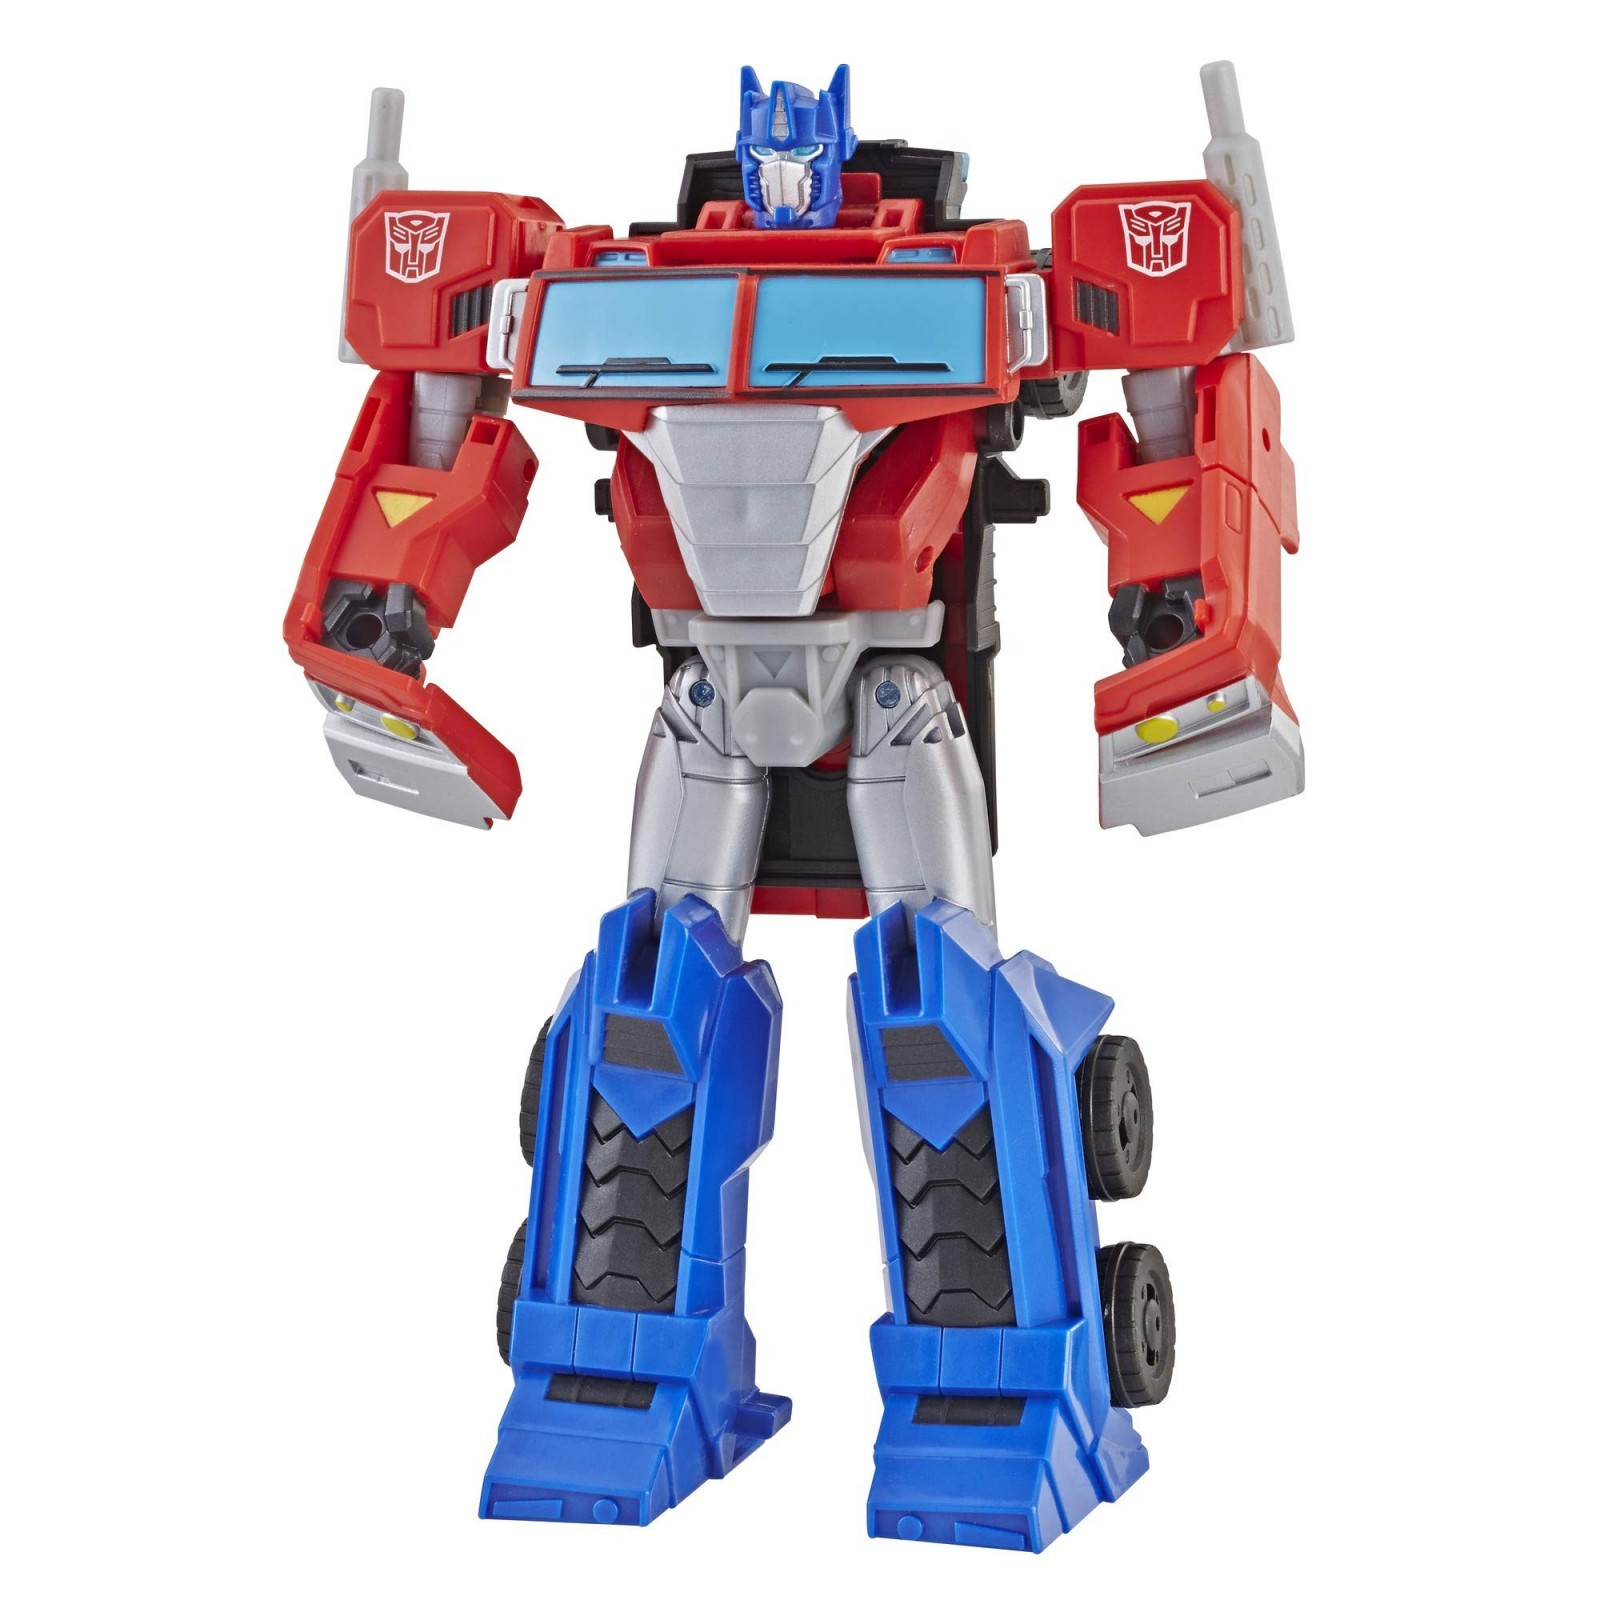 Transformers News: New Stock Images for all Upcoming Cyberverse Toys like Soundwave, Hot Rod , Prowl and More